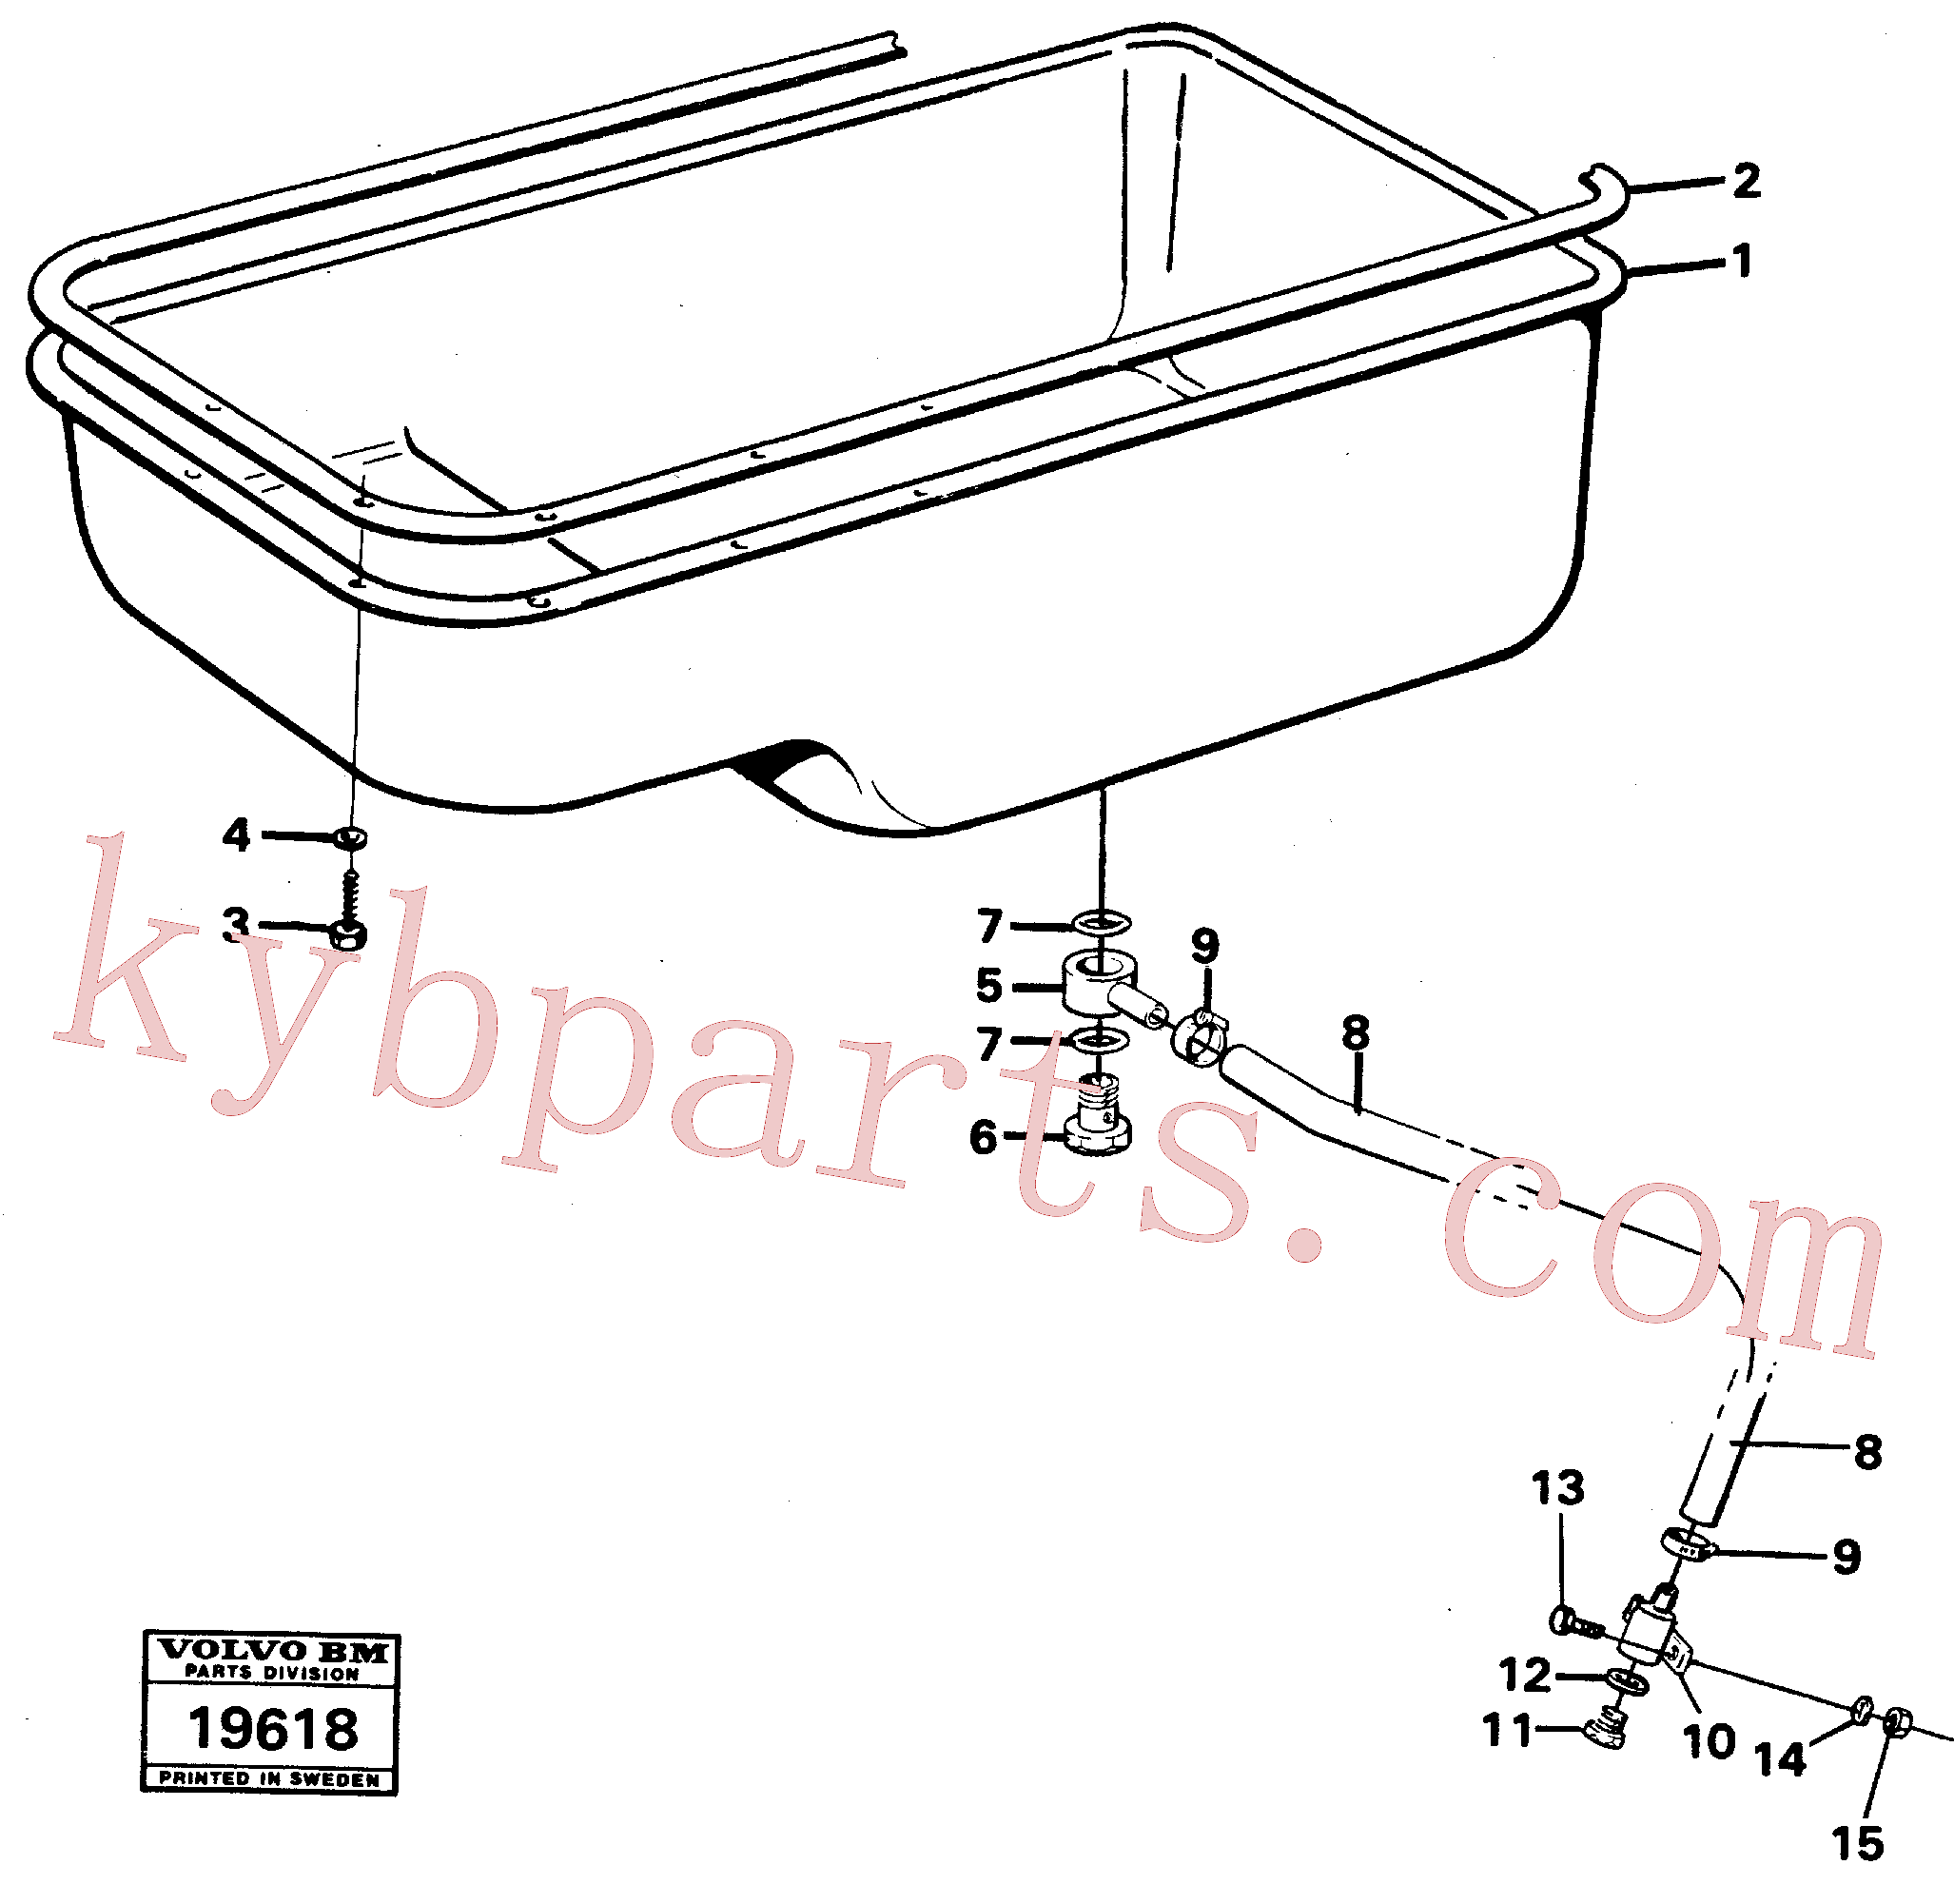 VOE13955997 for Volvo Oil sump(19618 assembly)